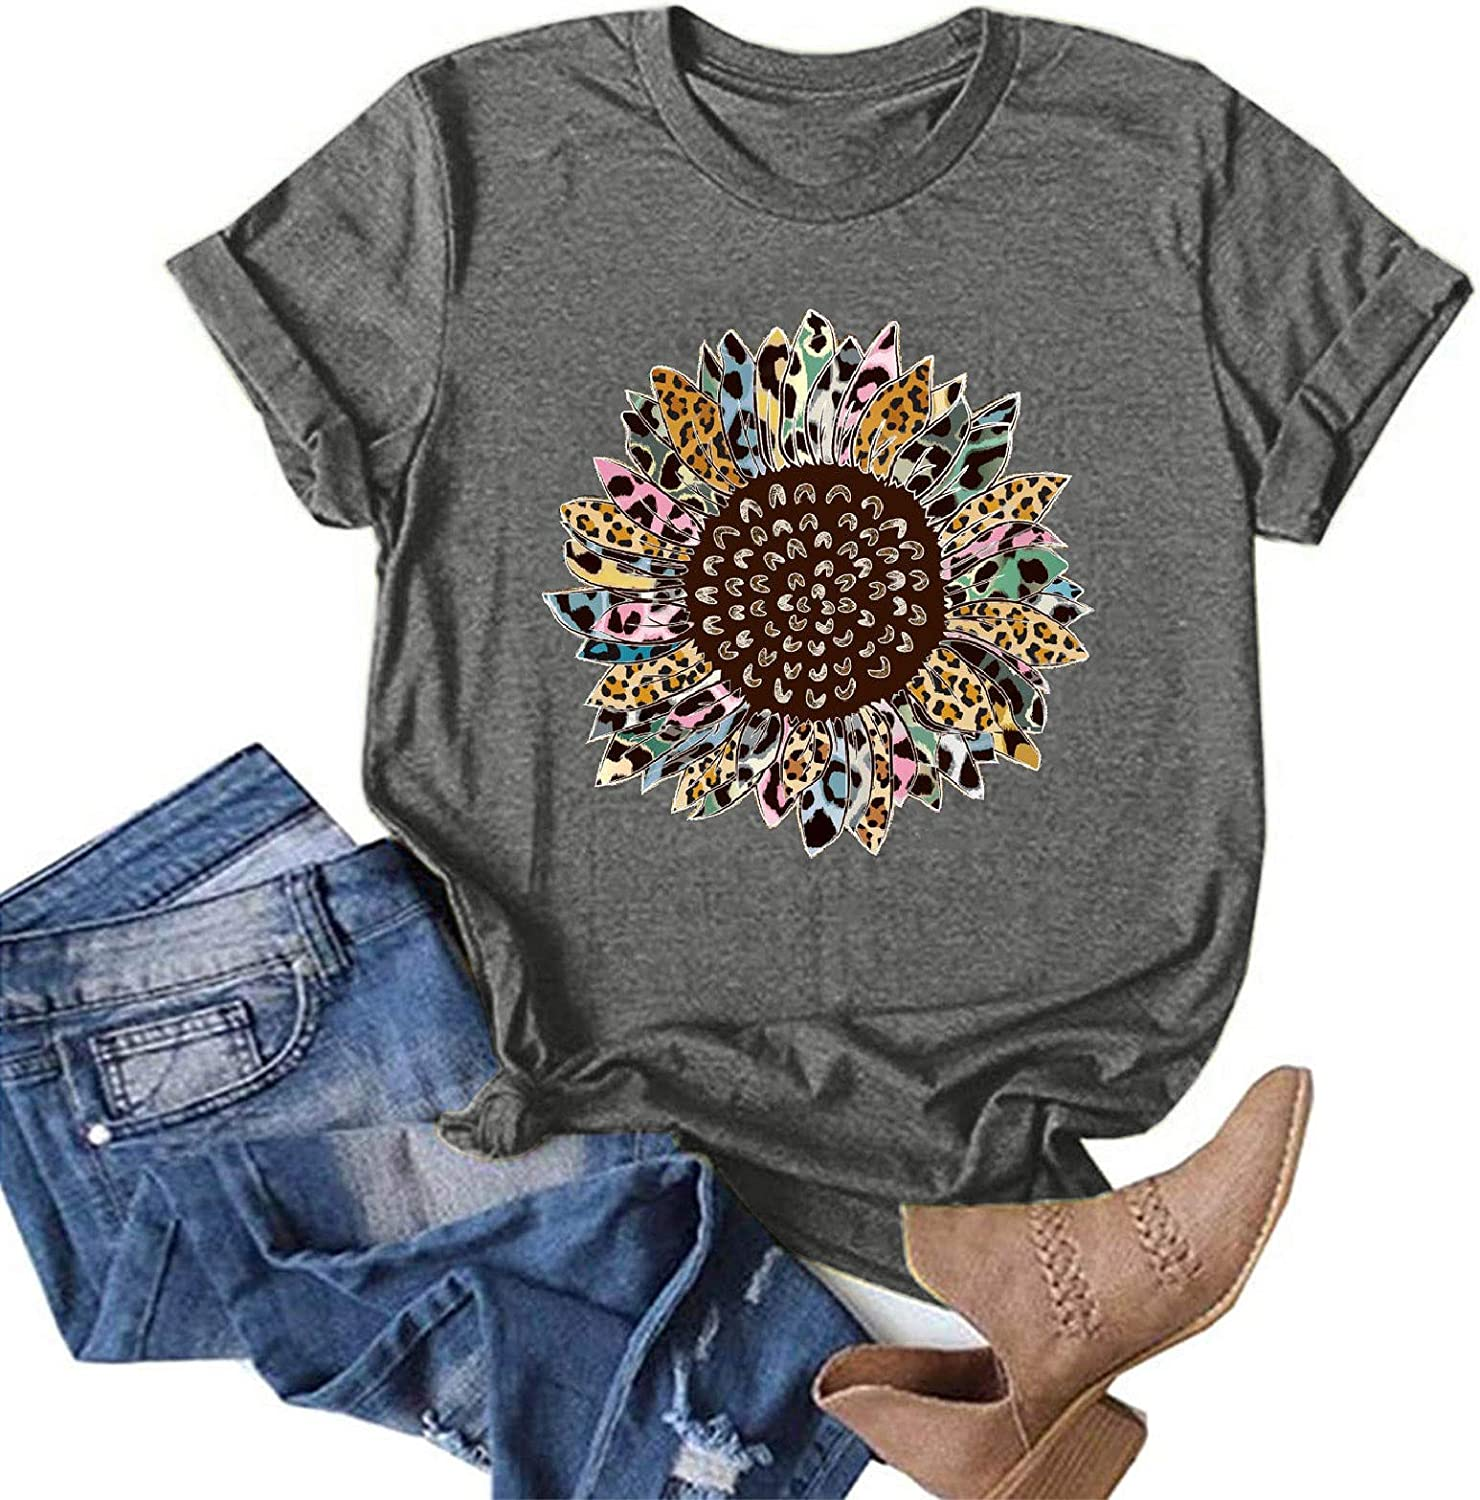 AODONG Short Sleeve Tops for Women, Womens Summer Casual Loose Fit Crewneck Graphic Tees Tunics Blouses Tops T Shirts